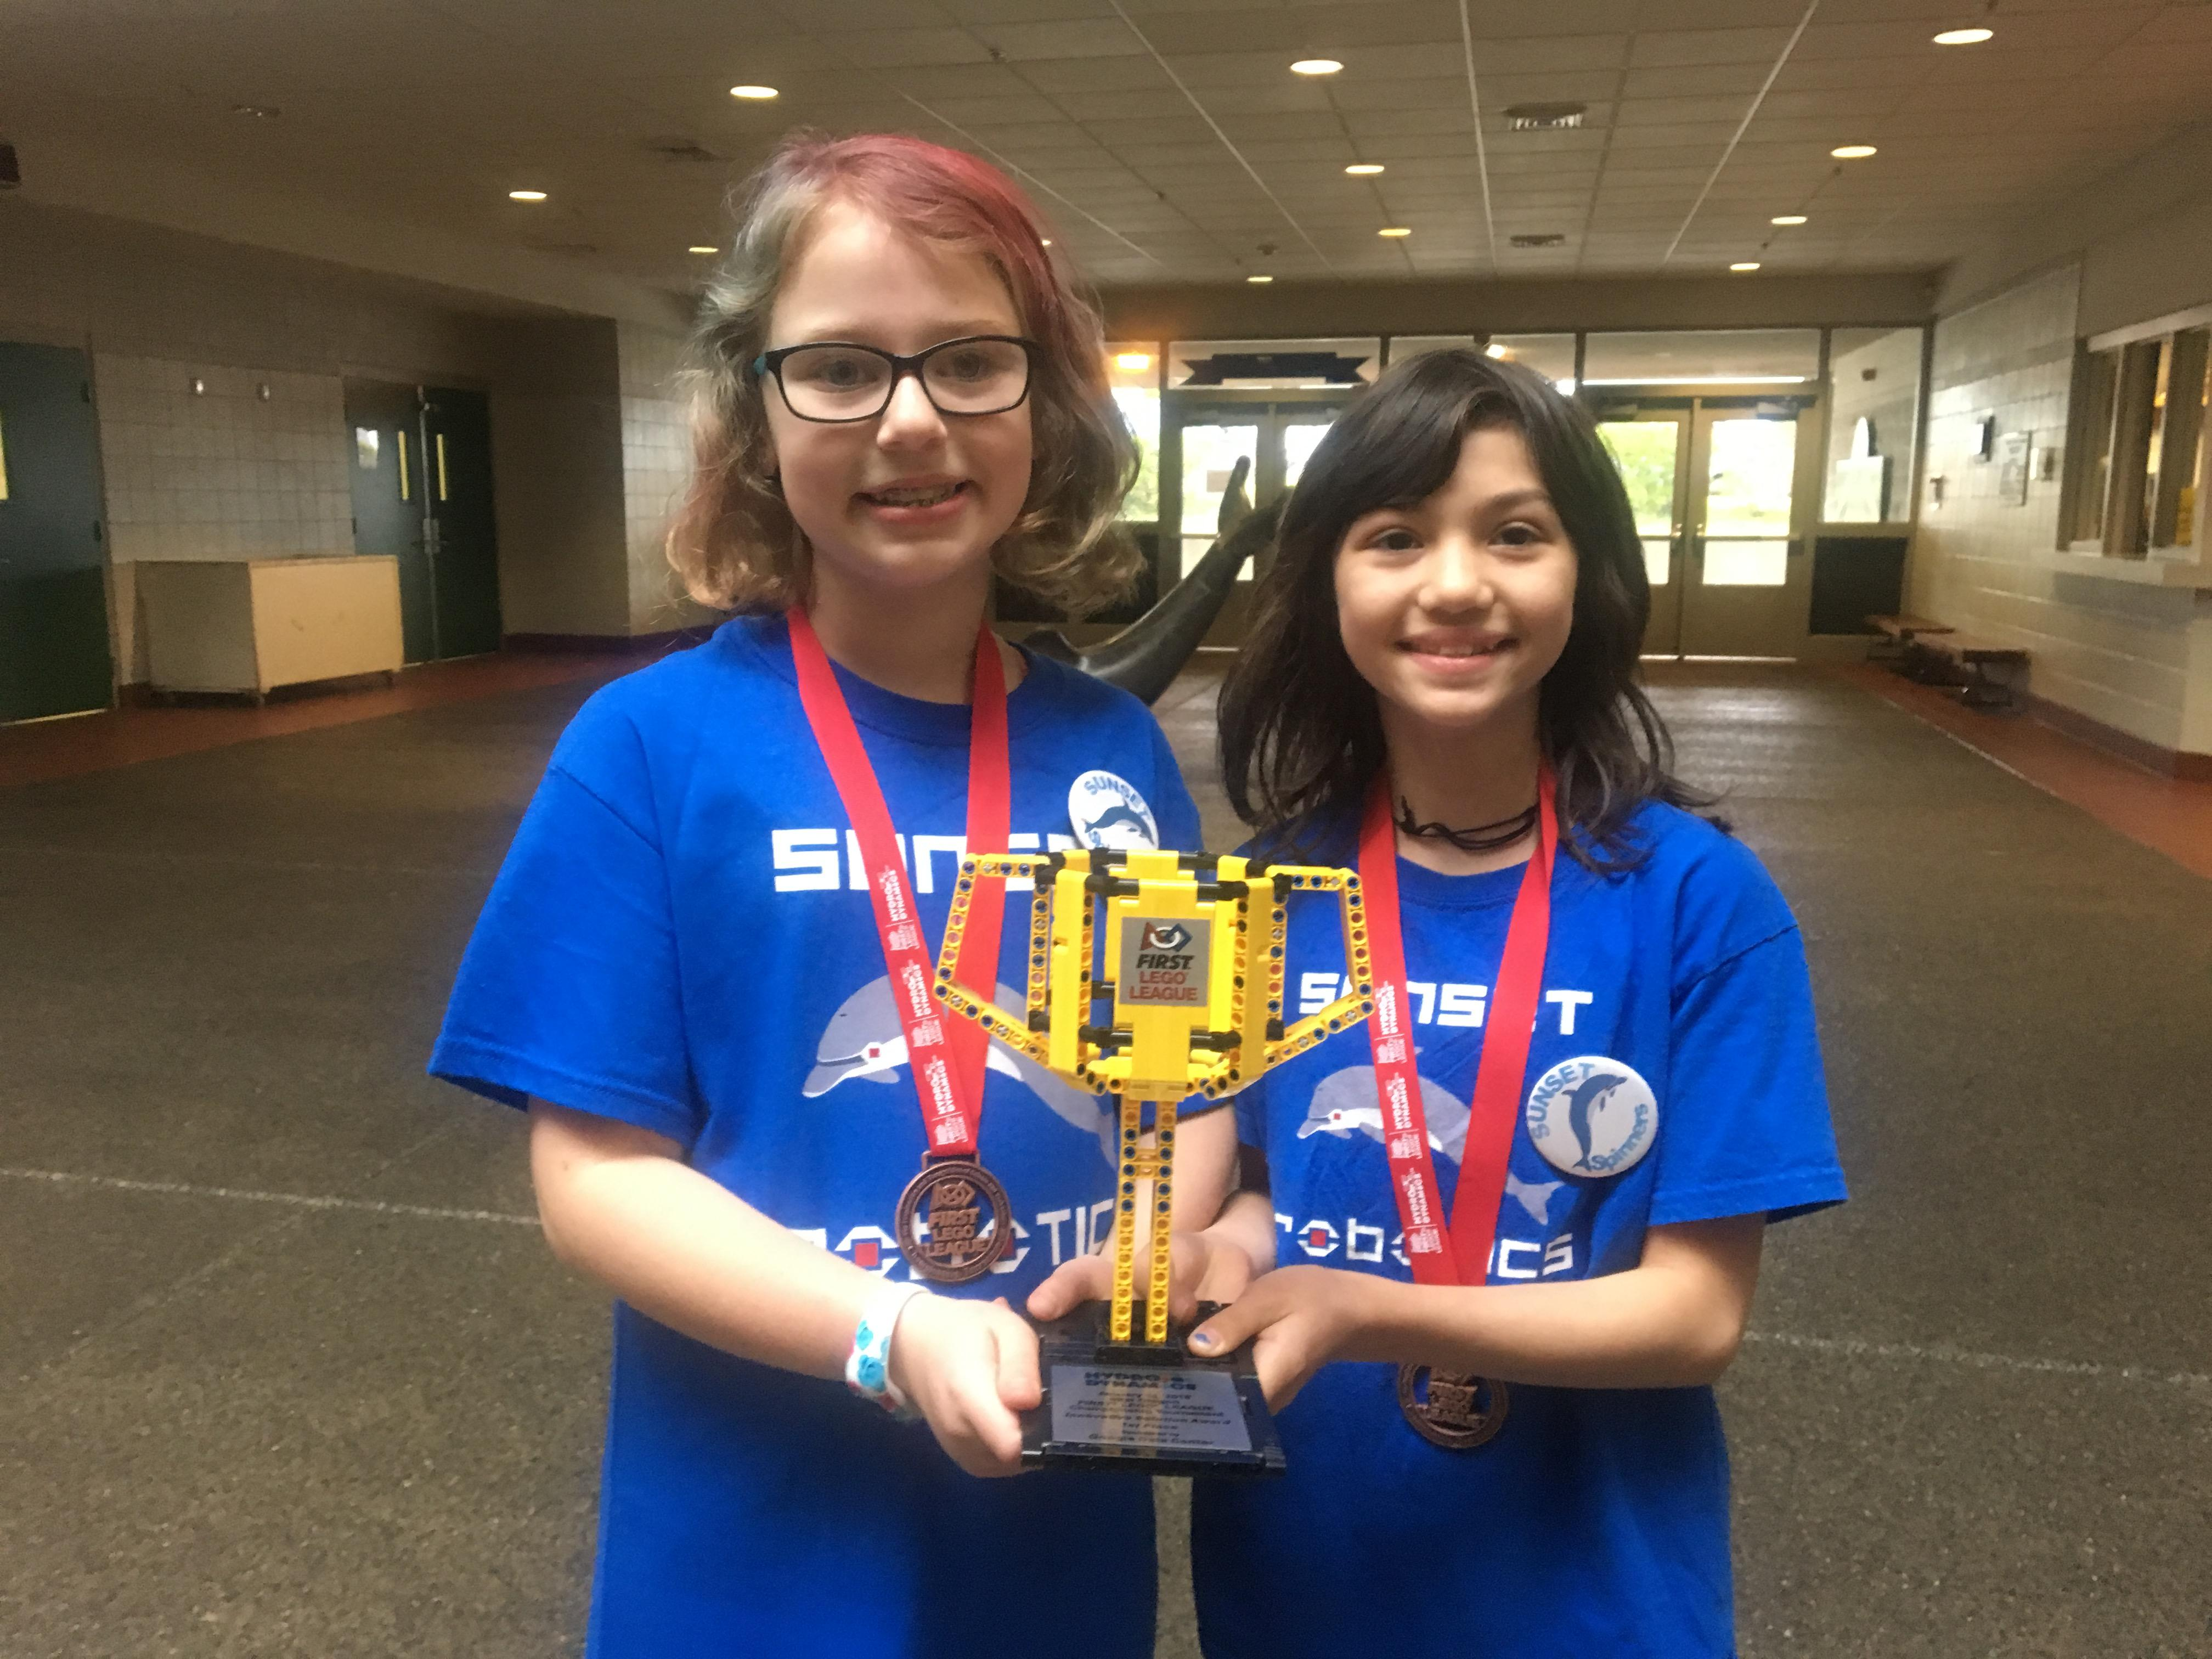 Two 10-year-olds win robotics competition with potential groundbreaking invention